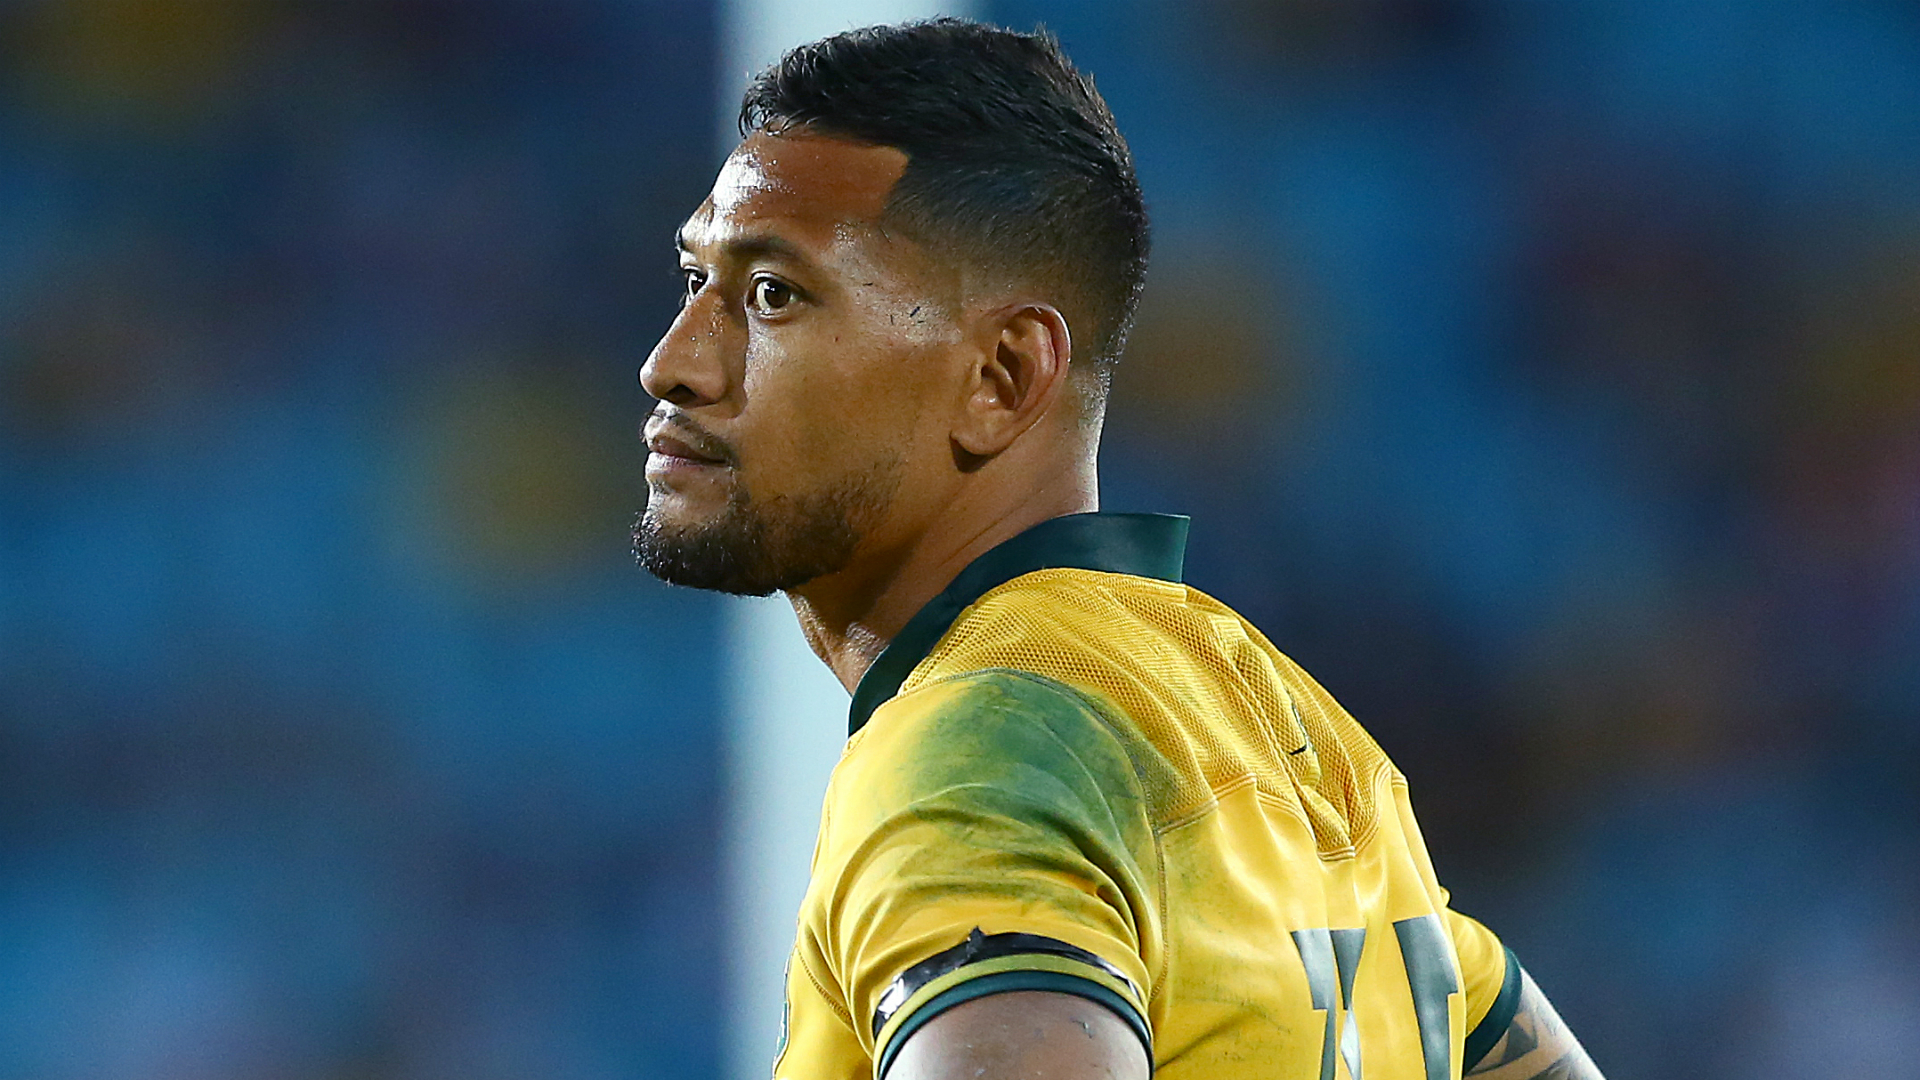 Folau sacked by Rugby Australia over social media posts